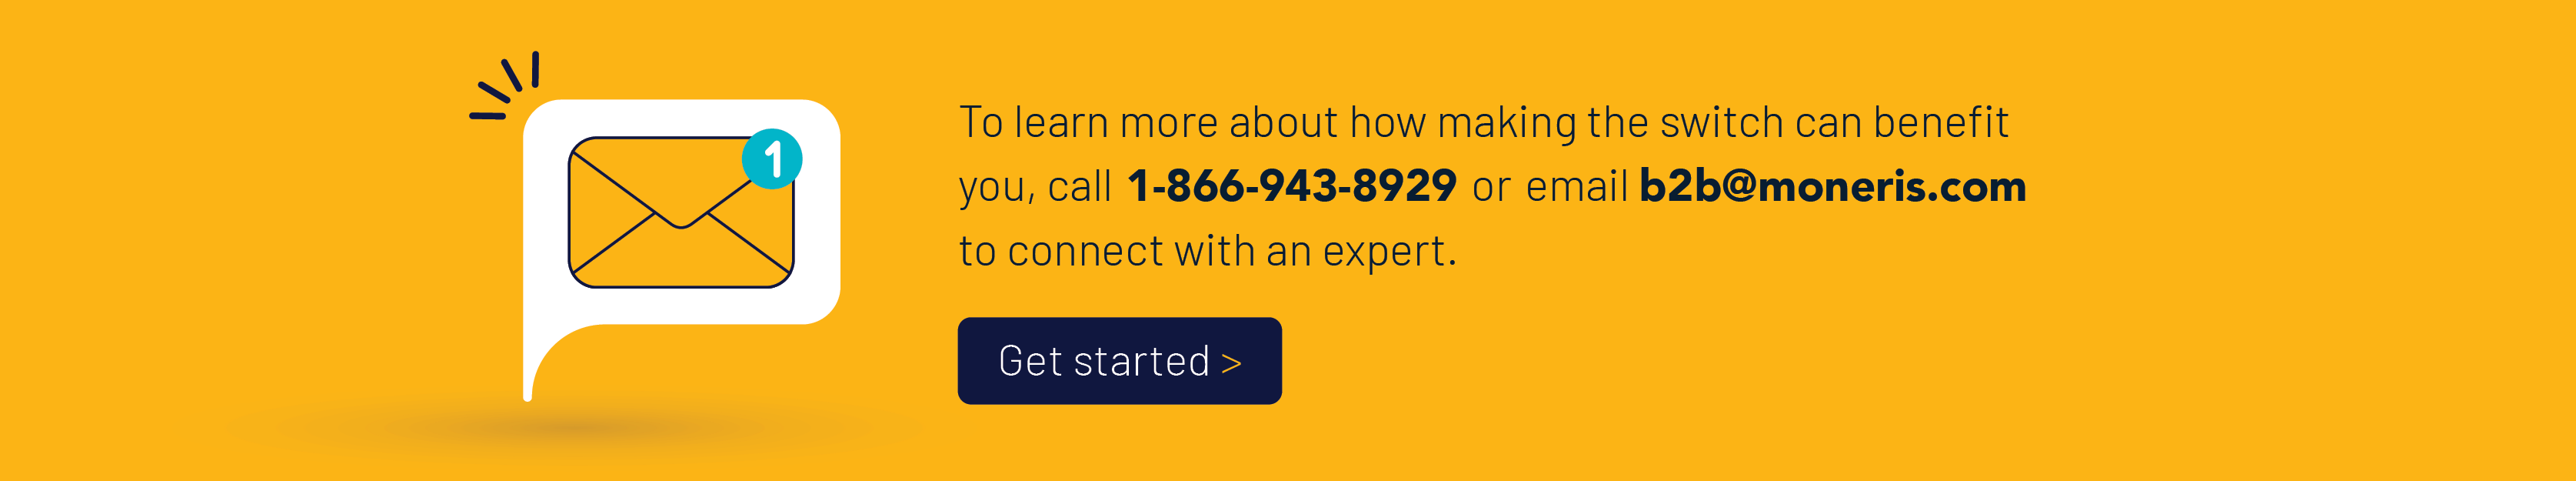 To learn more about how making the switch can benefit you, call 1-866-943-8929 or email b2b@moneris.com to connect with an expert.